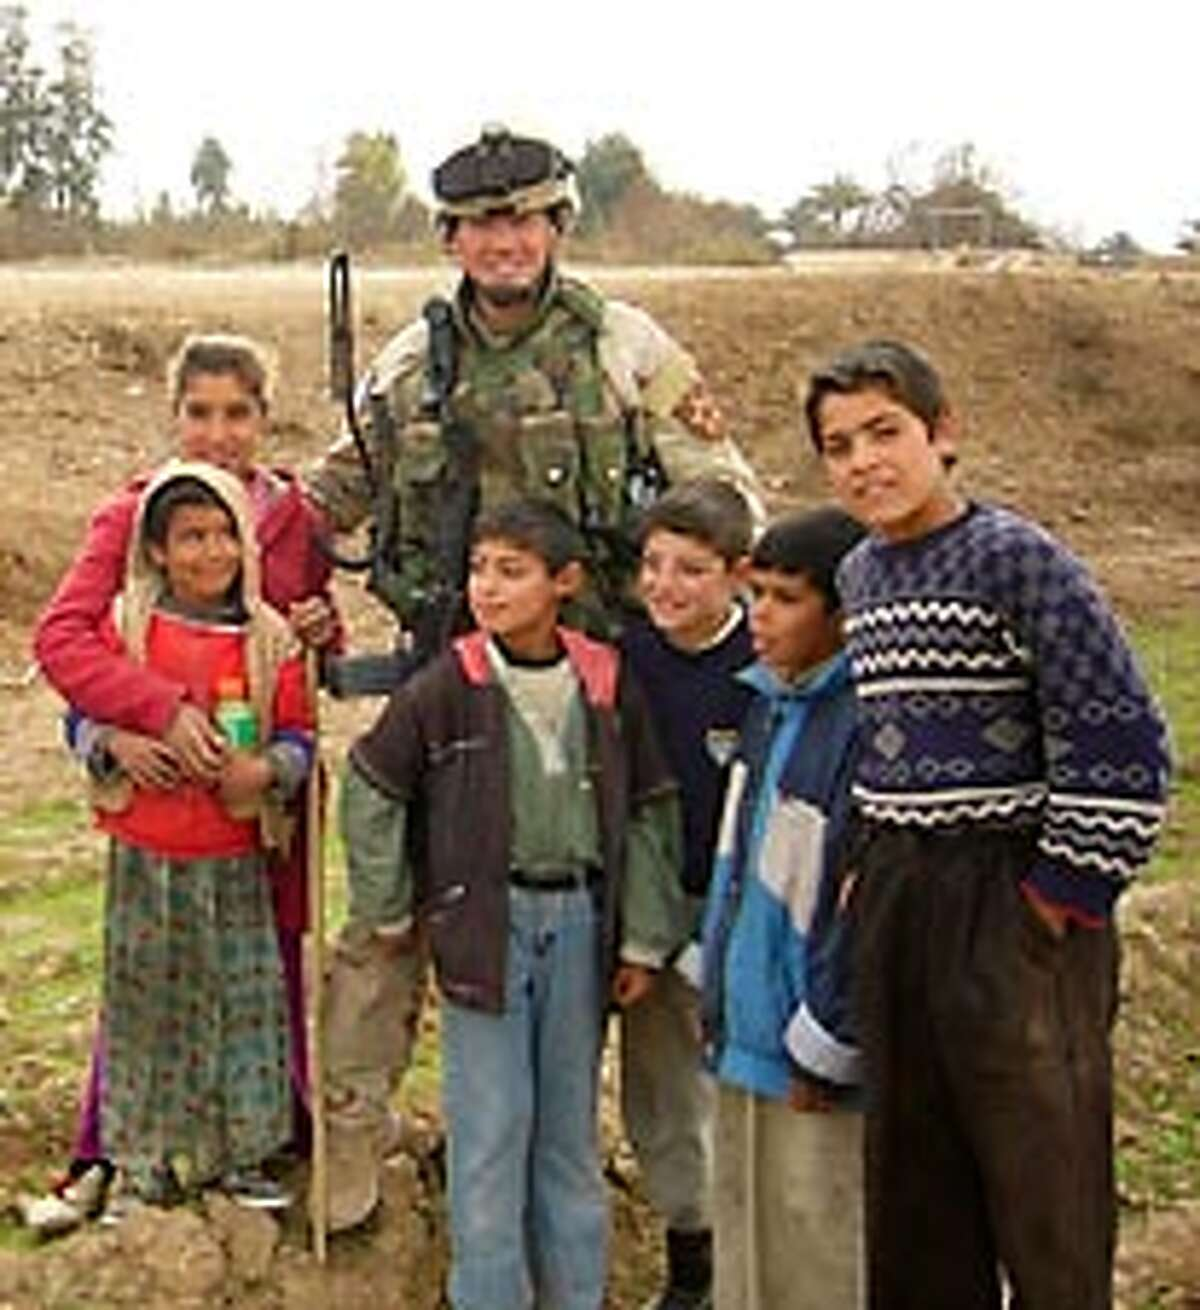 Christopher Bunda is shown in a recent photograph standing with children in Iraq. Bunda sent the photo to his wife and kids back home.